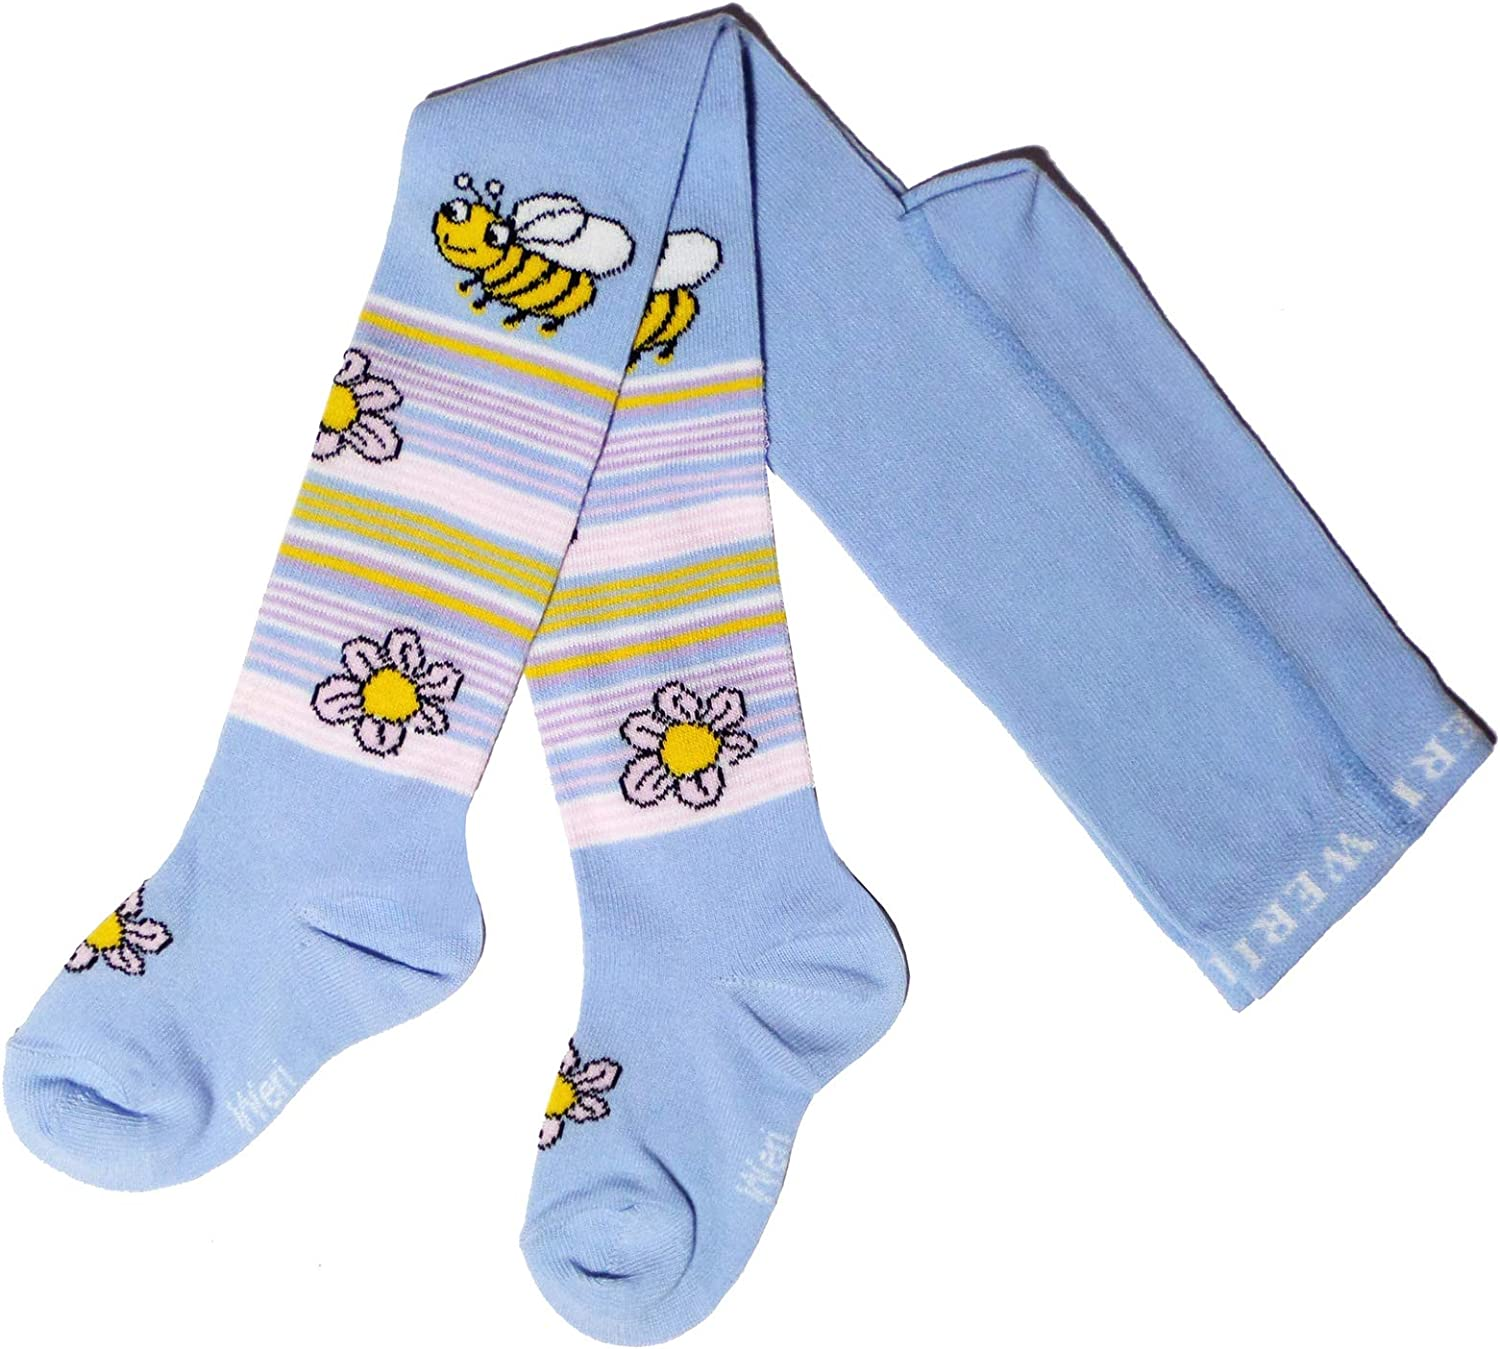 Weri Spezials Baby and Childrens Tights Bee with Flowers Light Blue